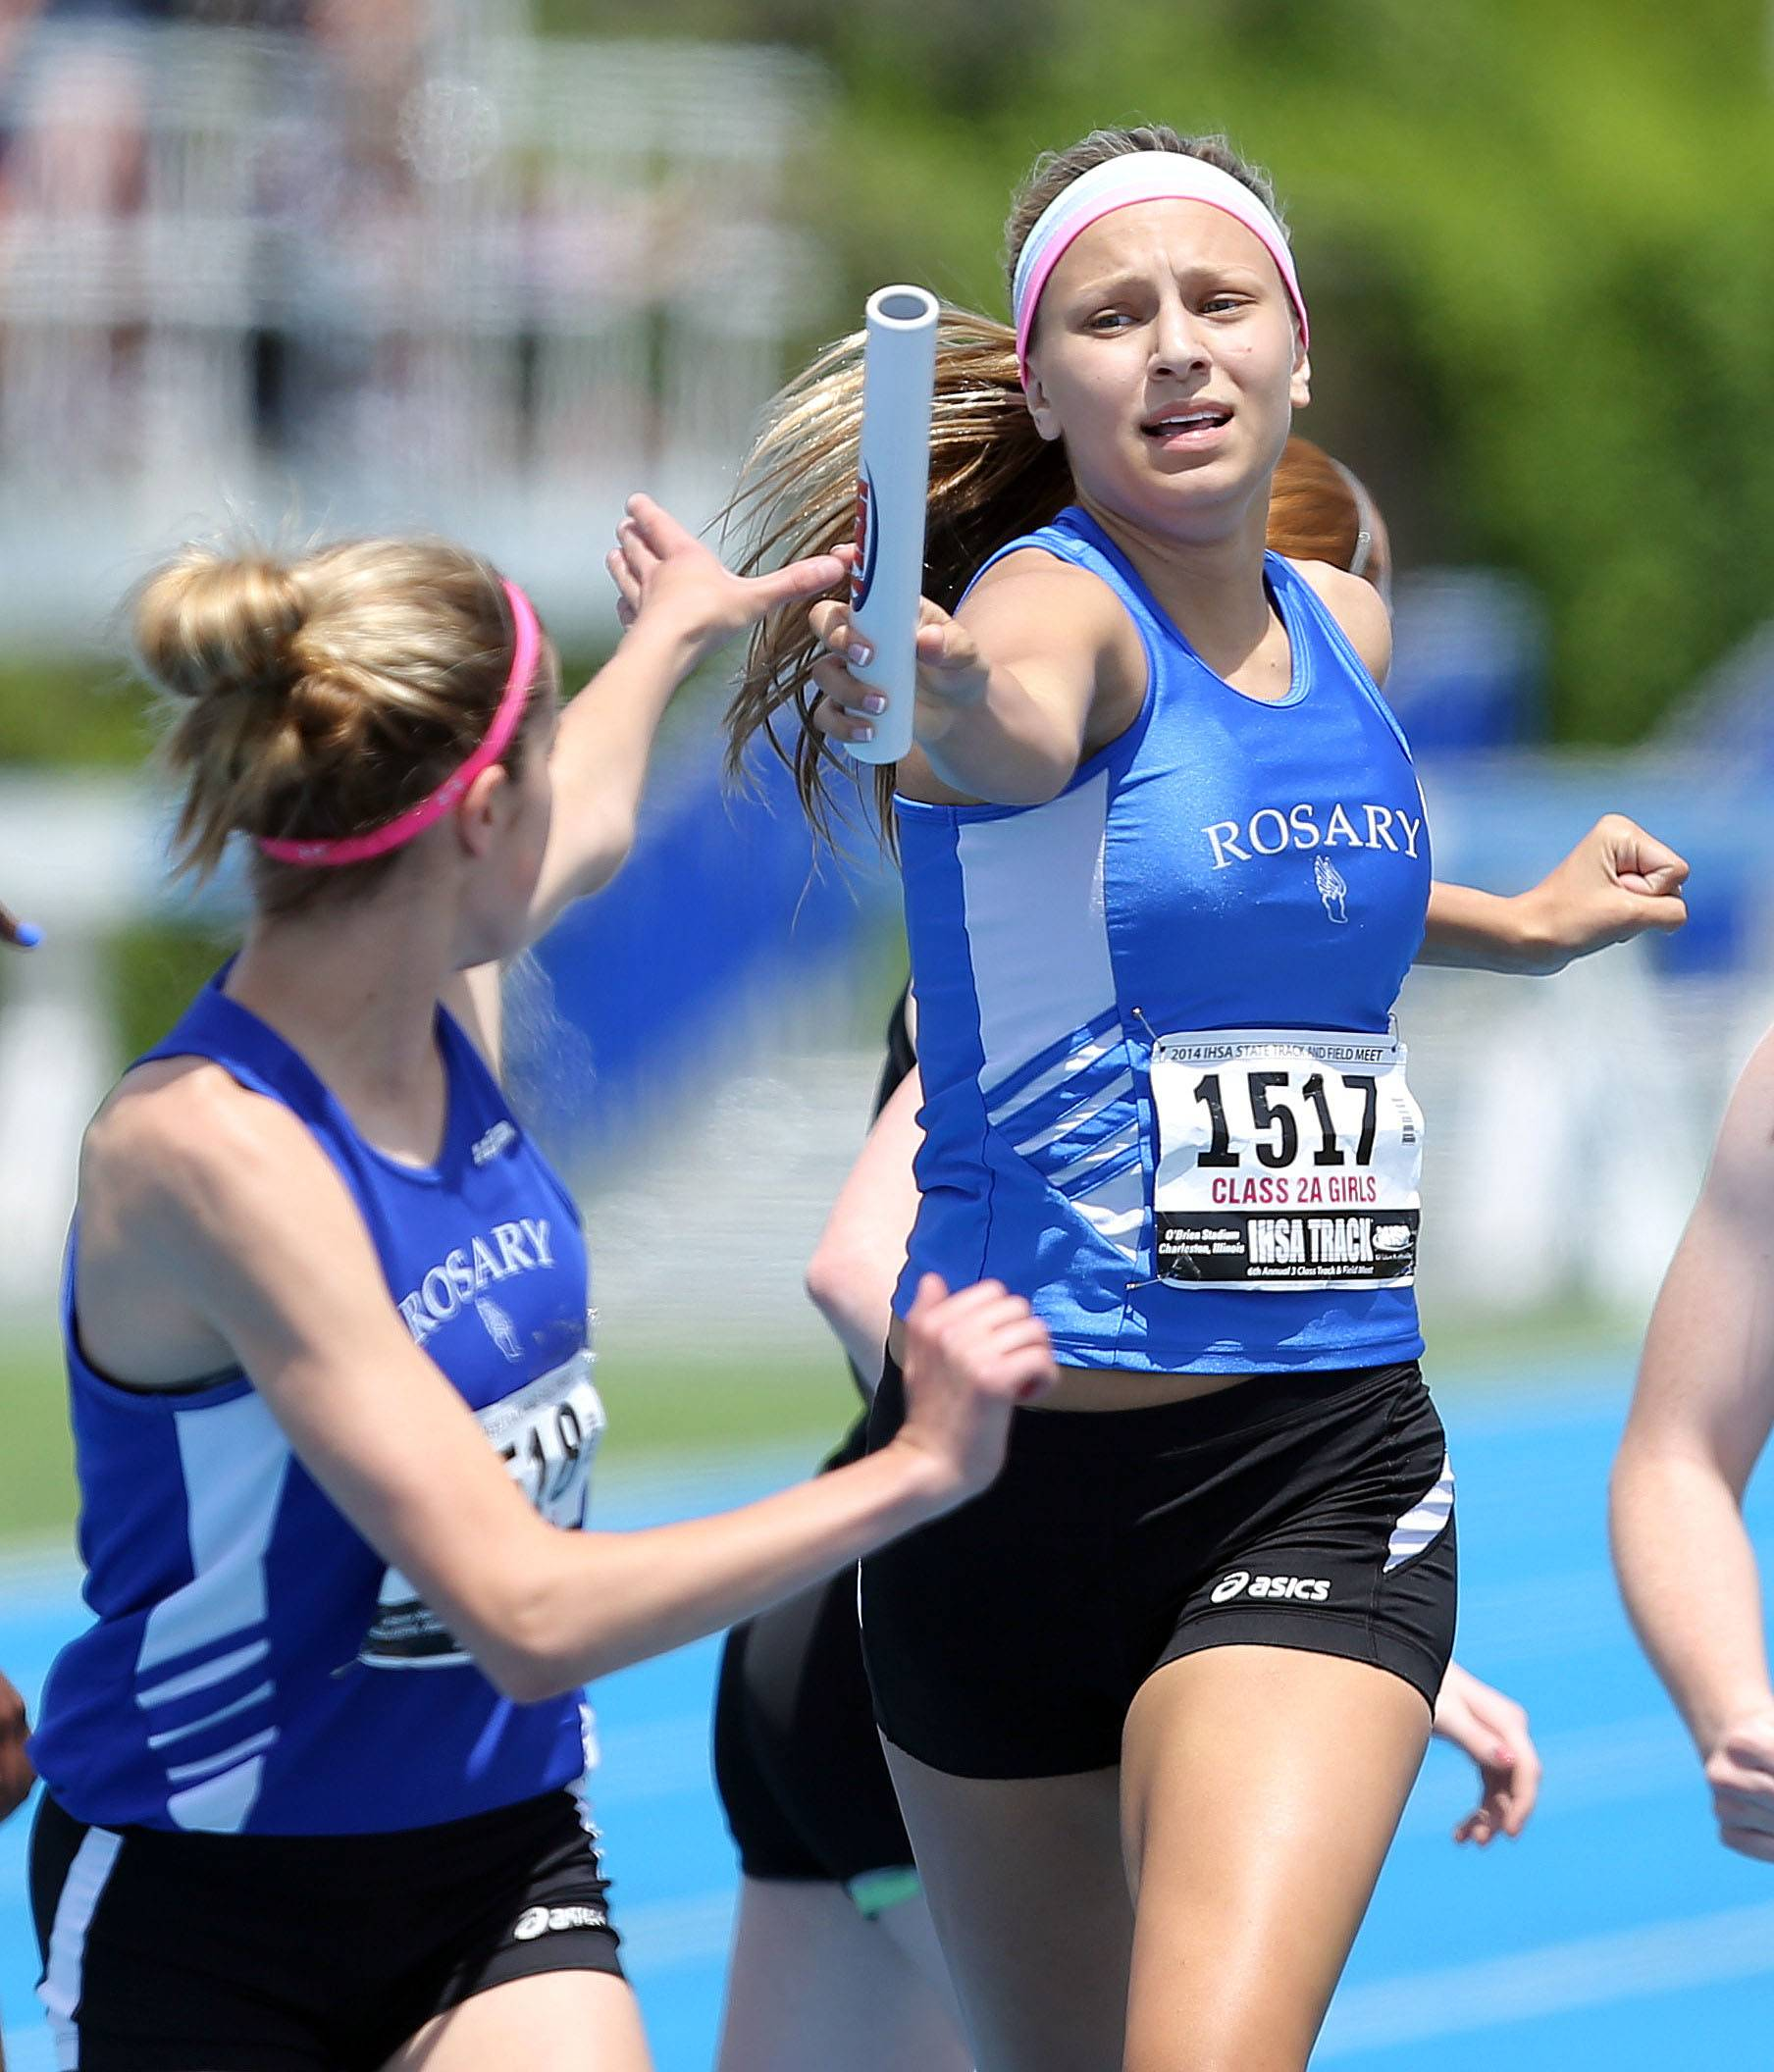 Rosary's Shea Vero, left, takes the baton from Molly Stefanski in the 4x400-meter relay in Class 2A.